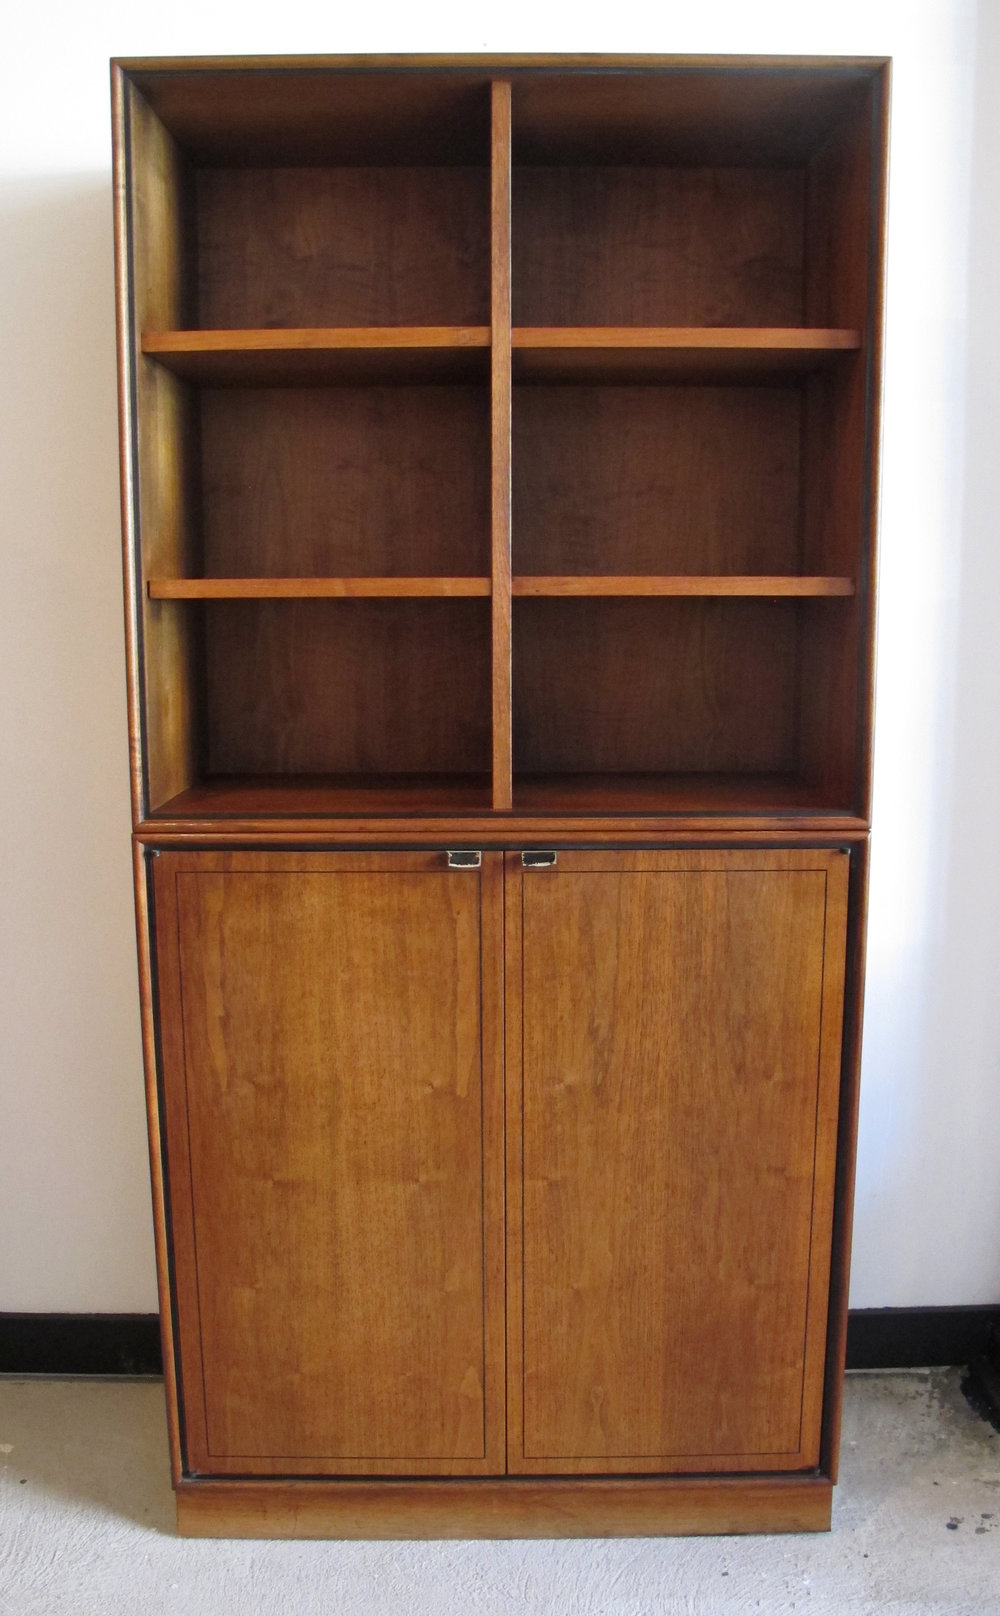 DANISH MODERN TWO-TIER WALNUT BOOKCASE AND CABINET